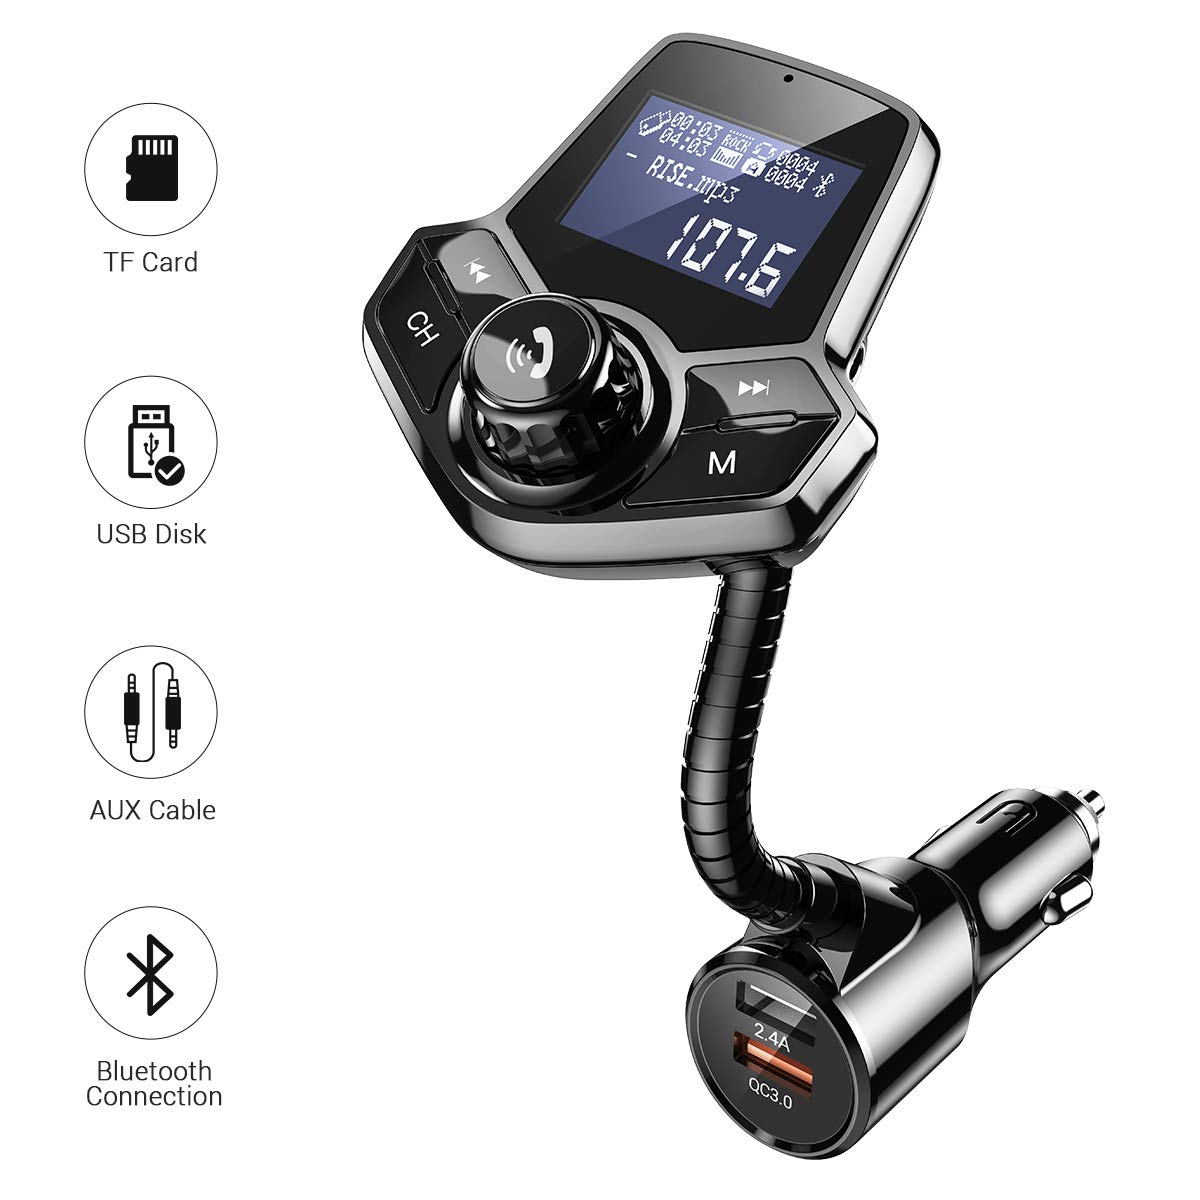 Bluetooth FM Transmitter for Car, QC3.0 Fast Charger Fm Transmitter Bluetooth, Wireless Car Audio Adapter Hands-Free Kit with 1.44'' Display for AUX Input/Output, TF Card and U Disk by Ainope by Ainope (Image #1)